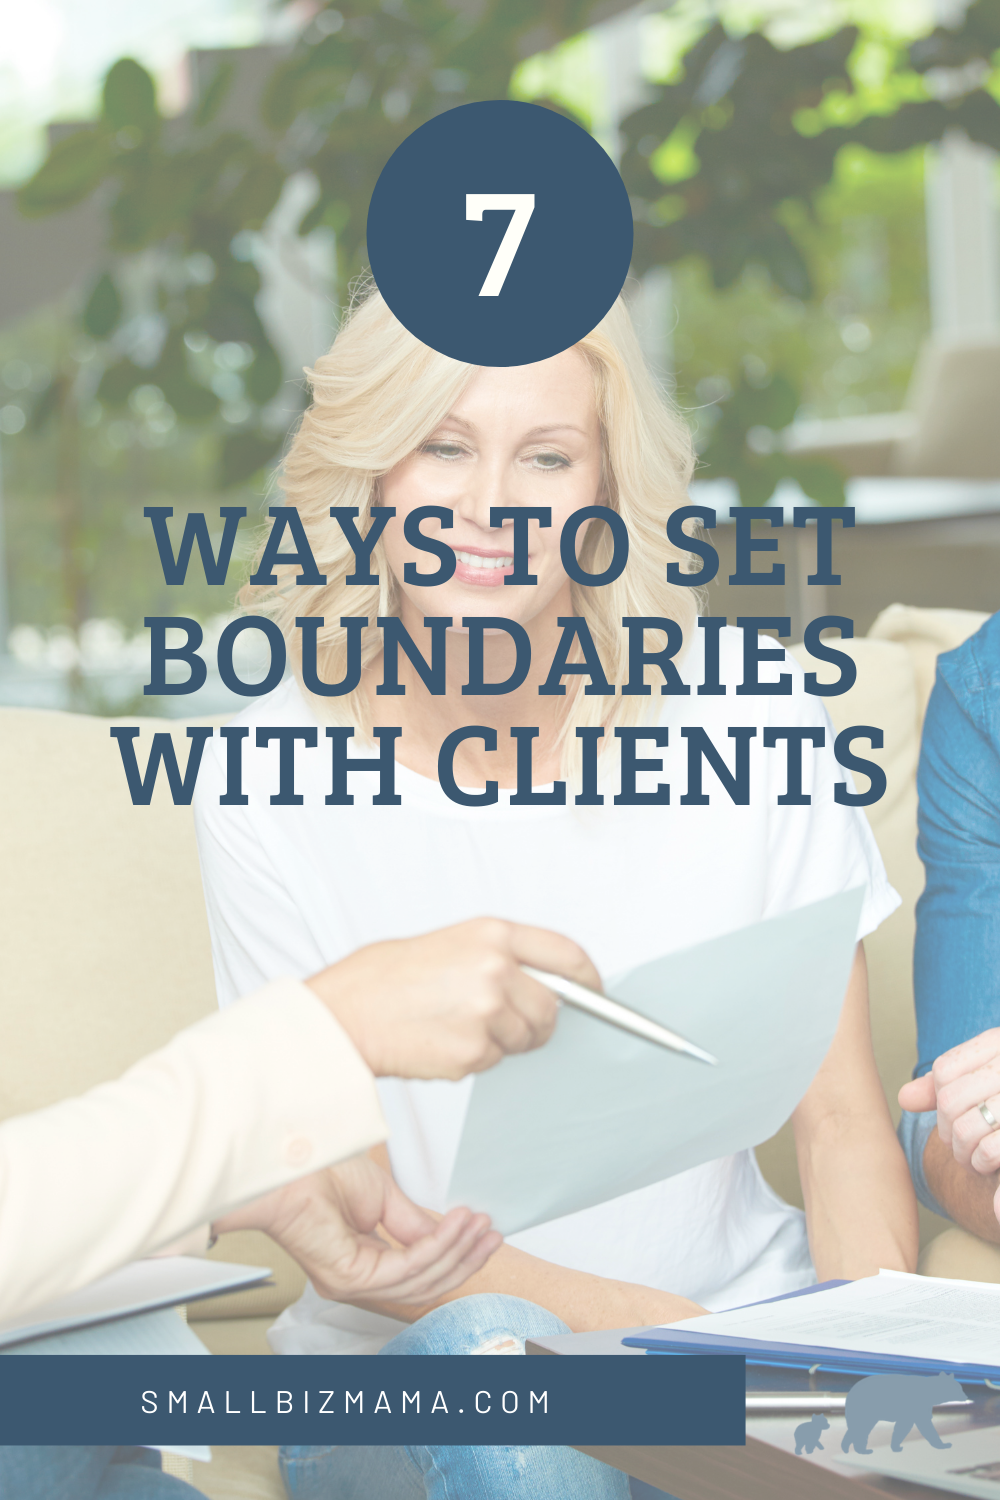 7 ways to set boundaries with clients